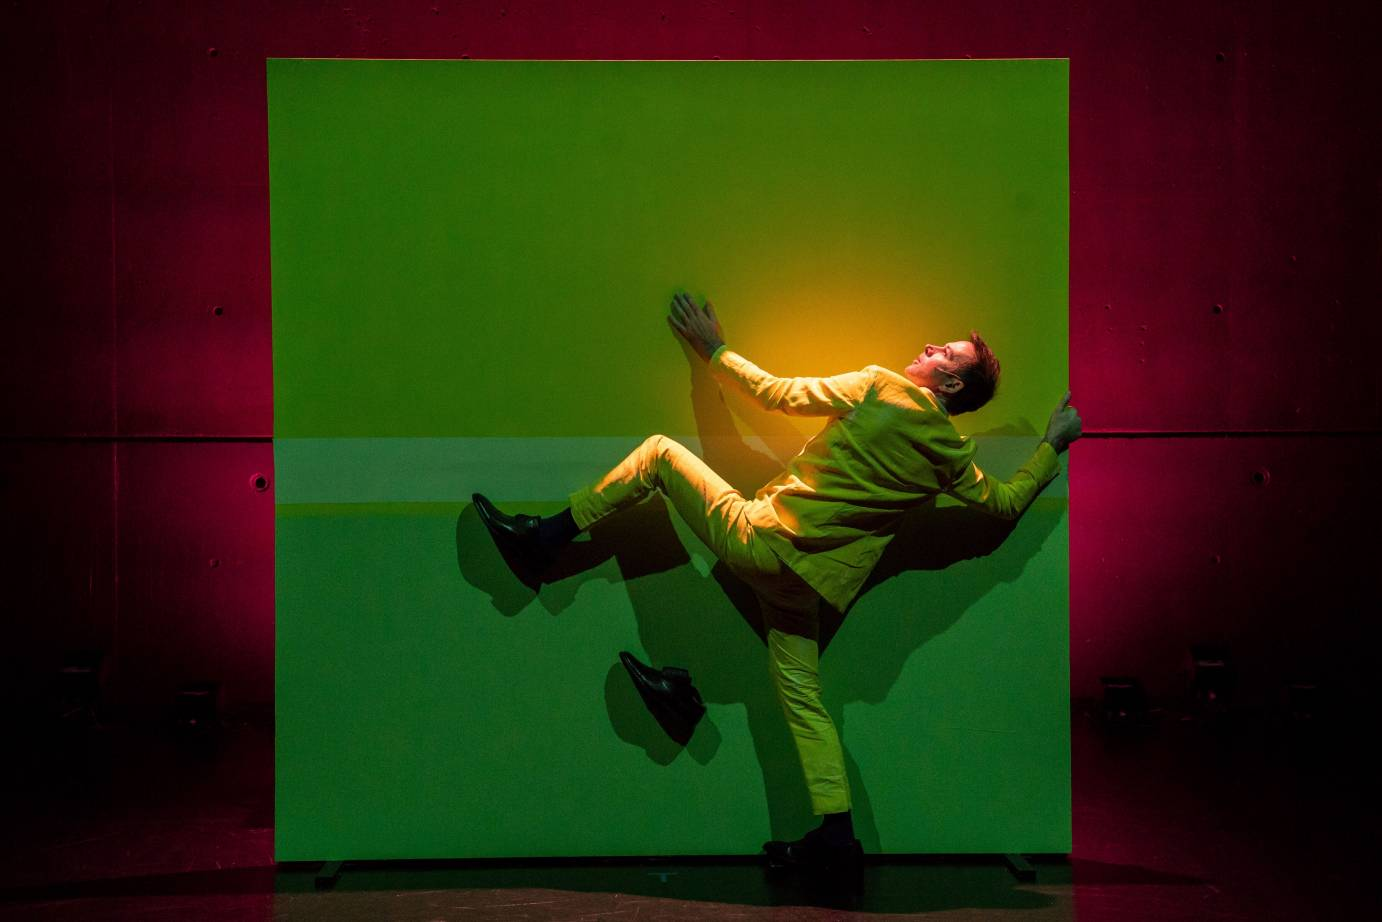 A man in a yellow suit tries to climb a green-lit wall